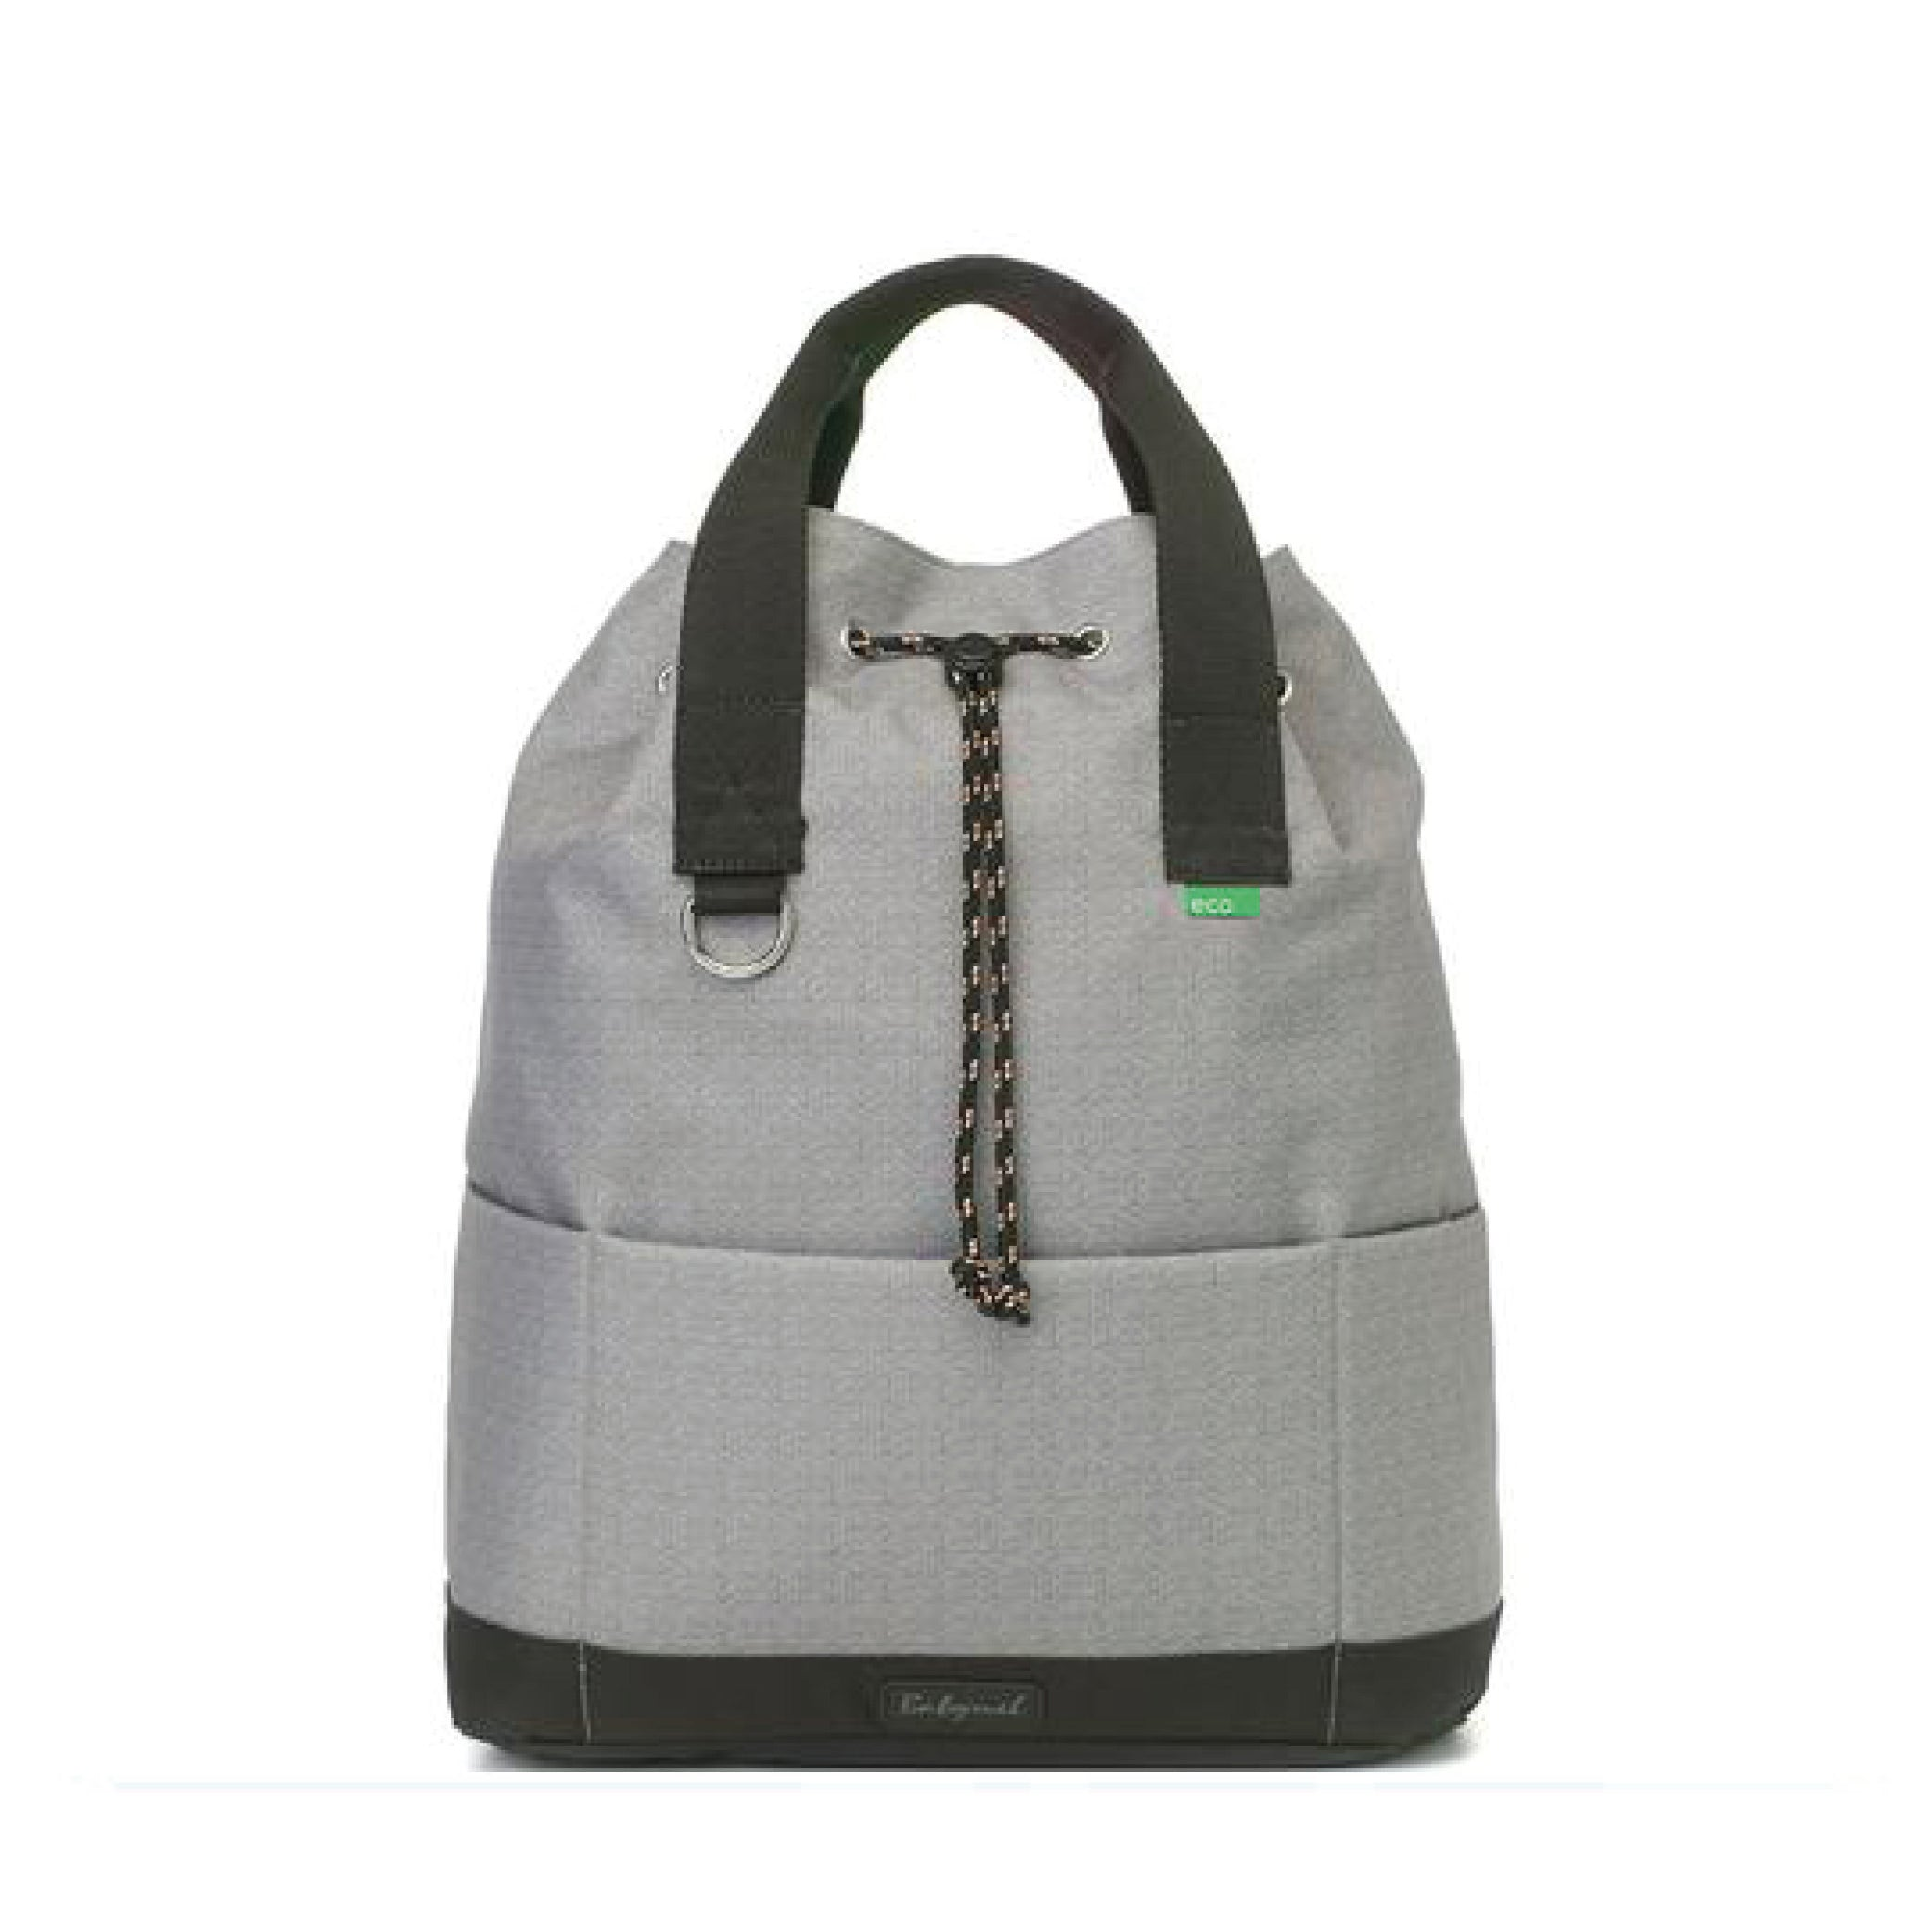 Changing bag/backpack - Top 'n' Tail eco - Grey - Babymel